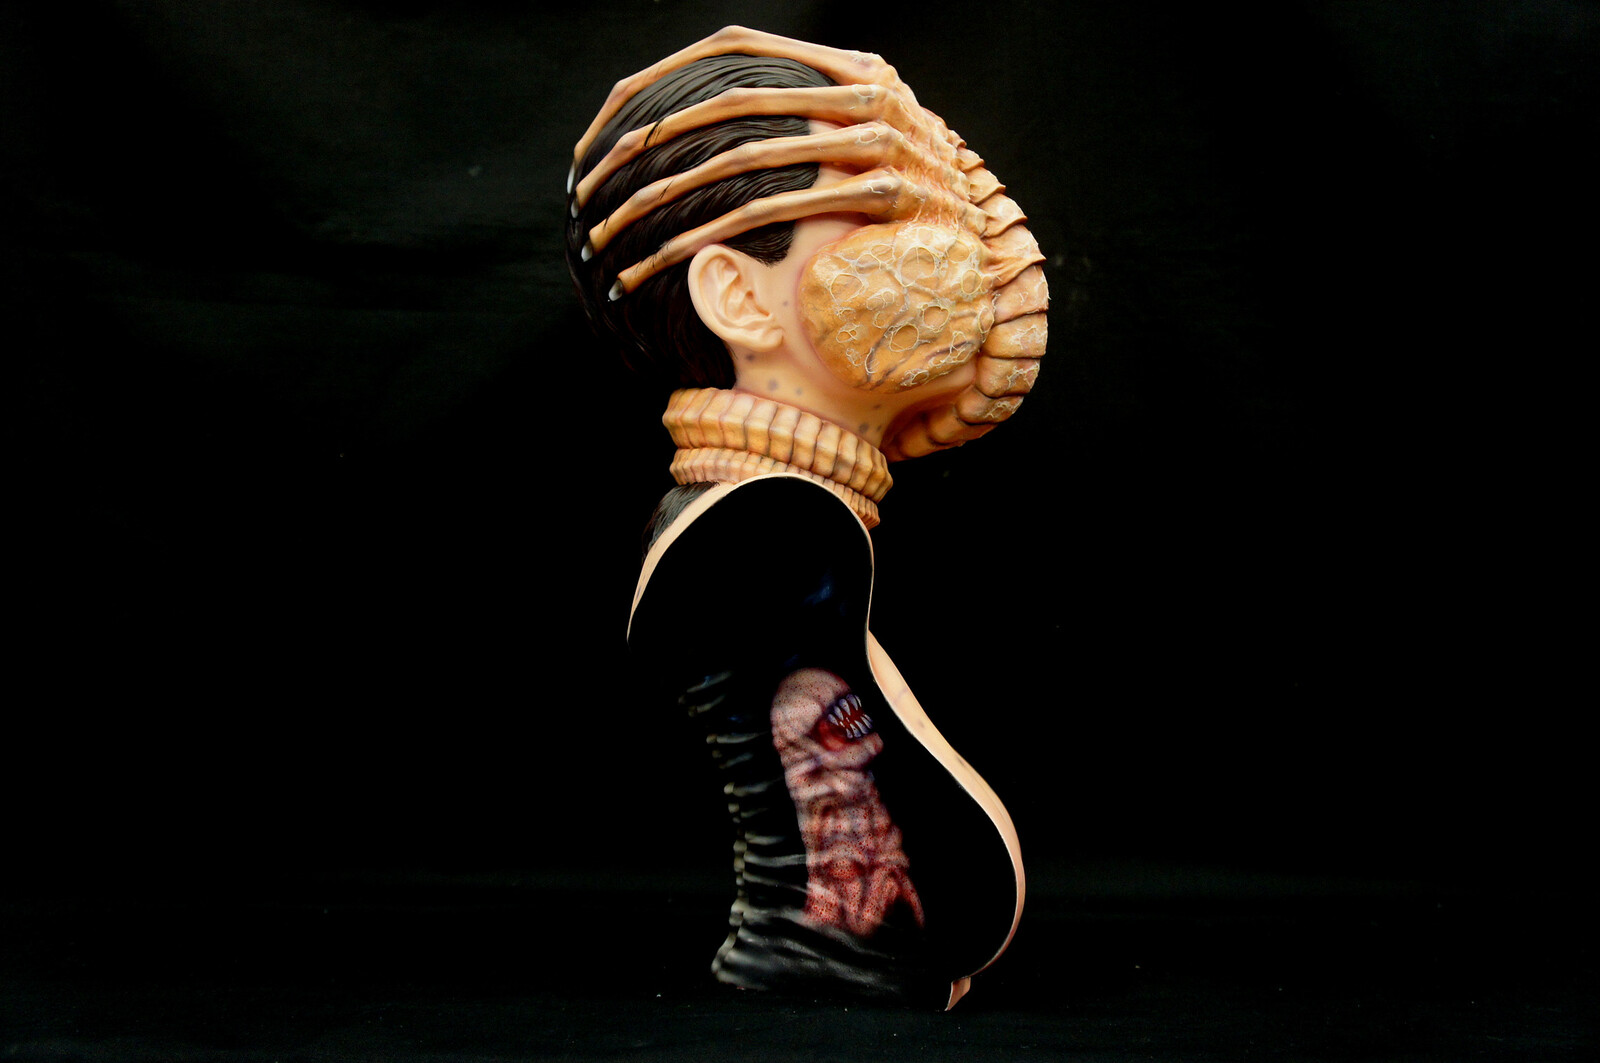 Alien Facehugger The Colonist 1:1 scale Bust Art Statue